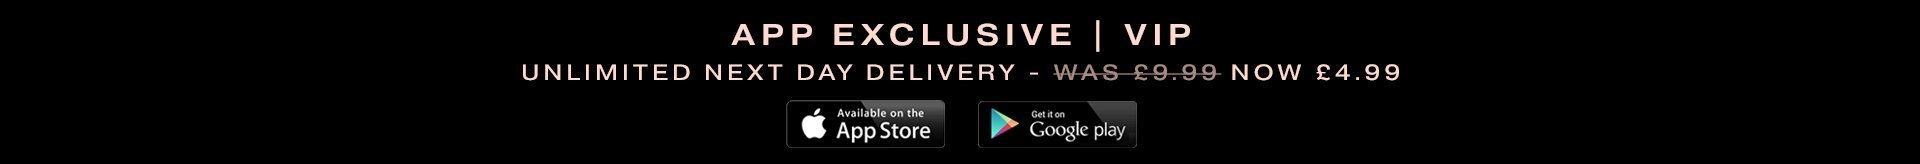 App Exclusive | VIP Unlimited Next Day Delivery - Was £9.99 now £4.99